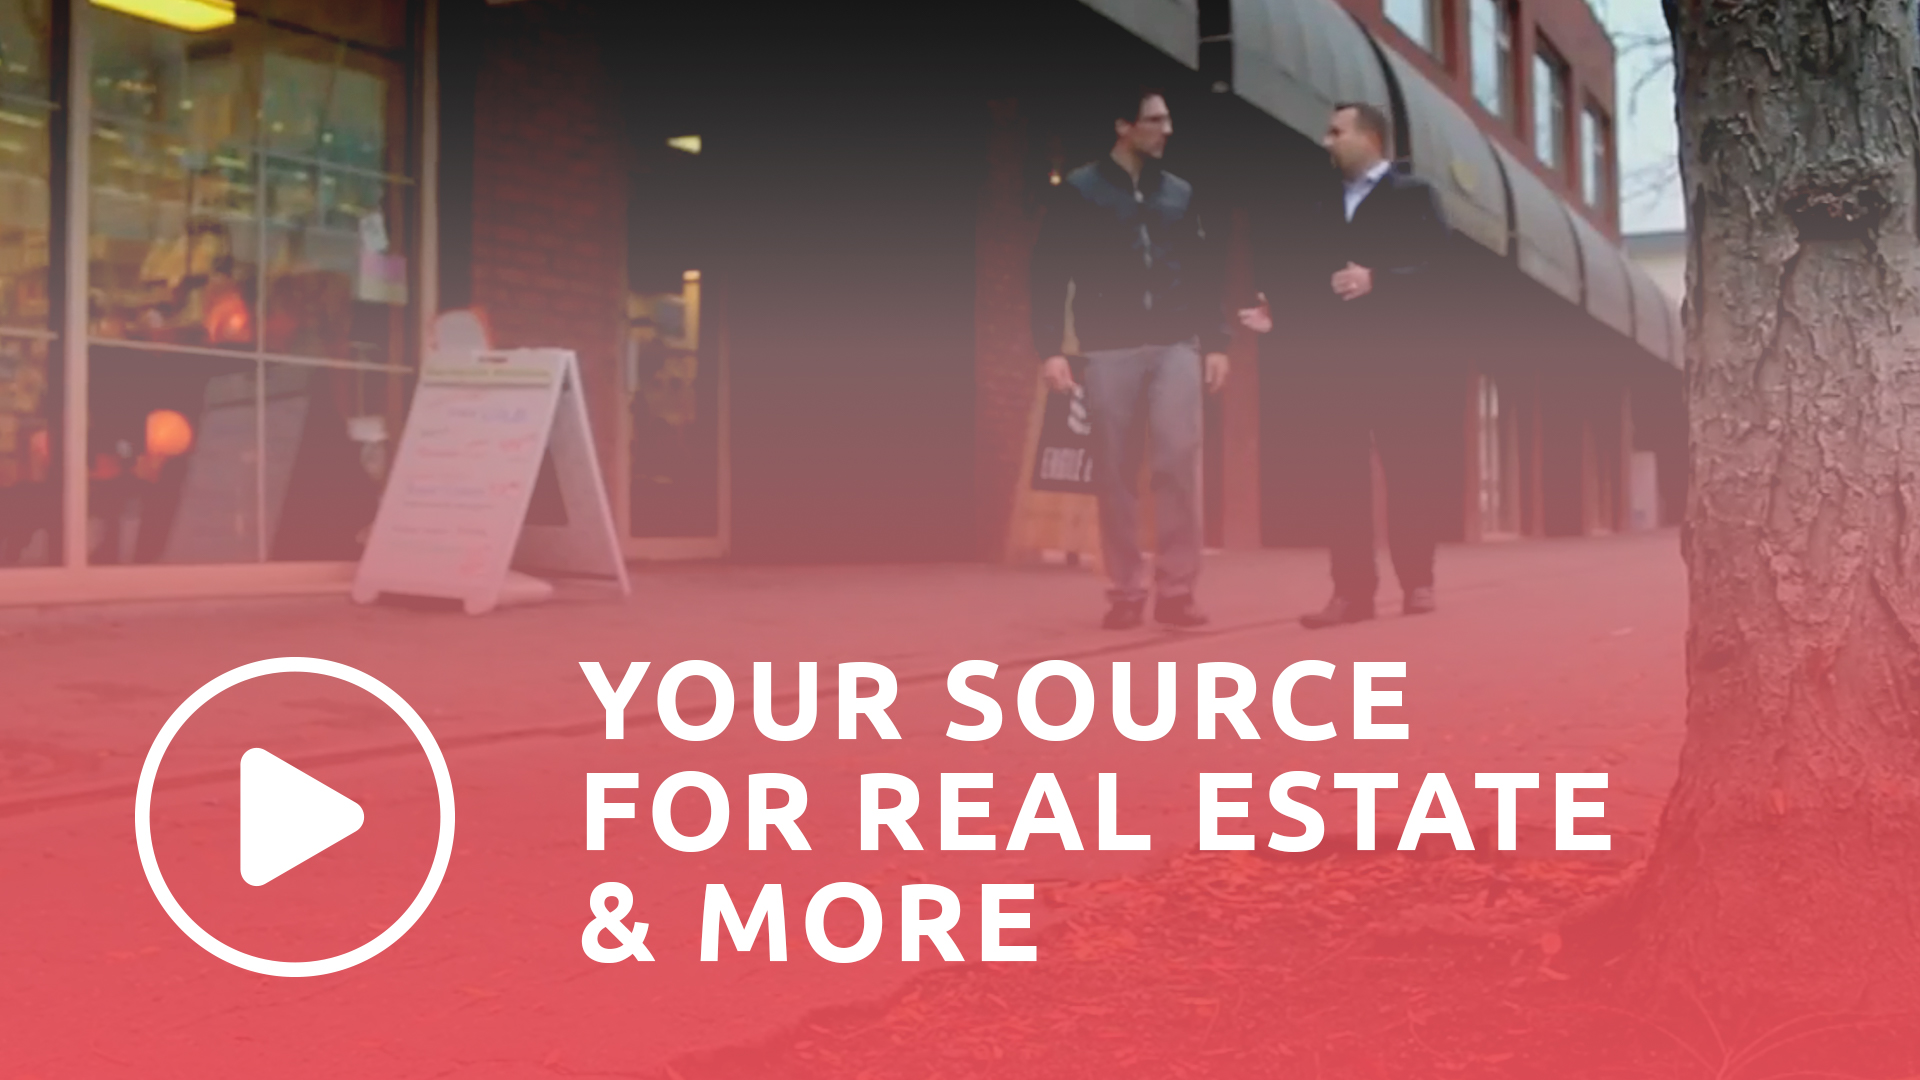 Watch video of your source for real estate and more.